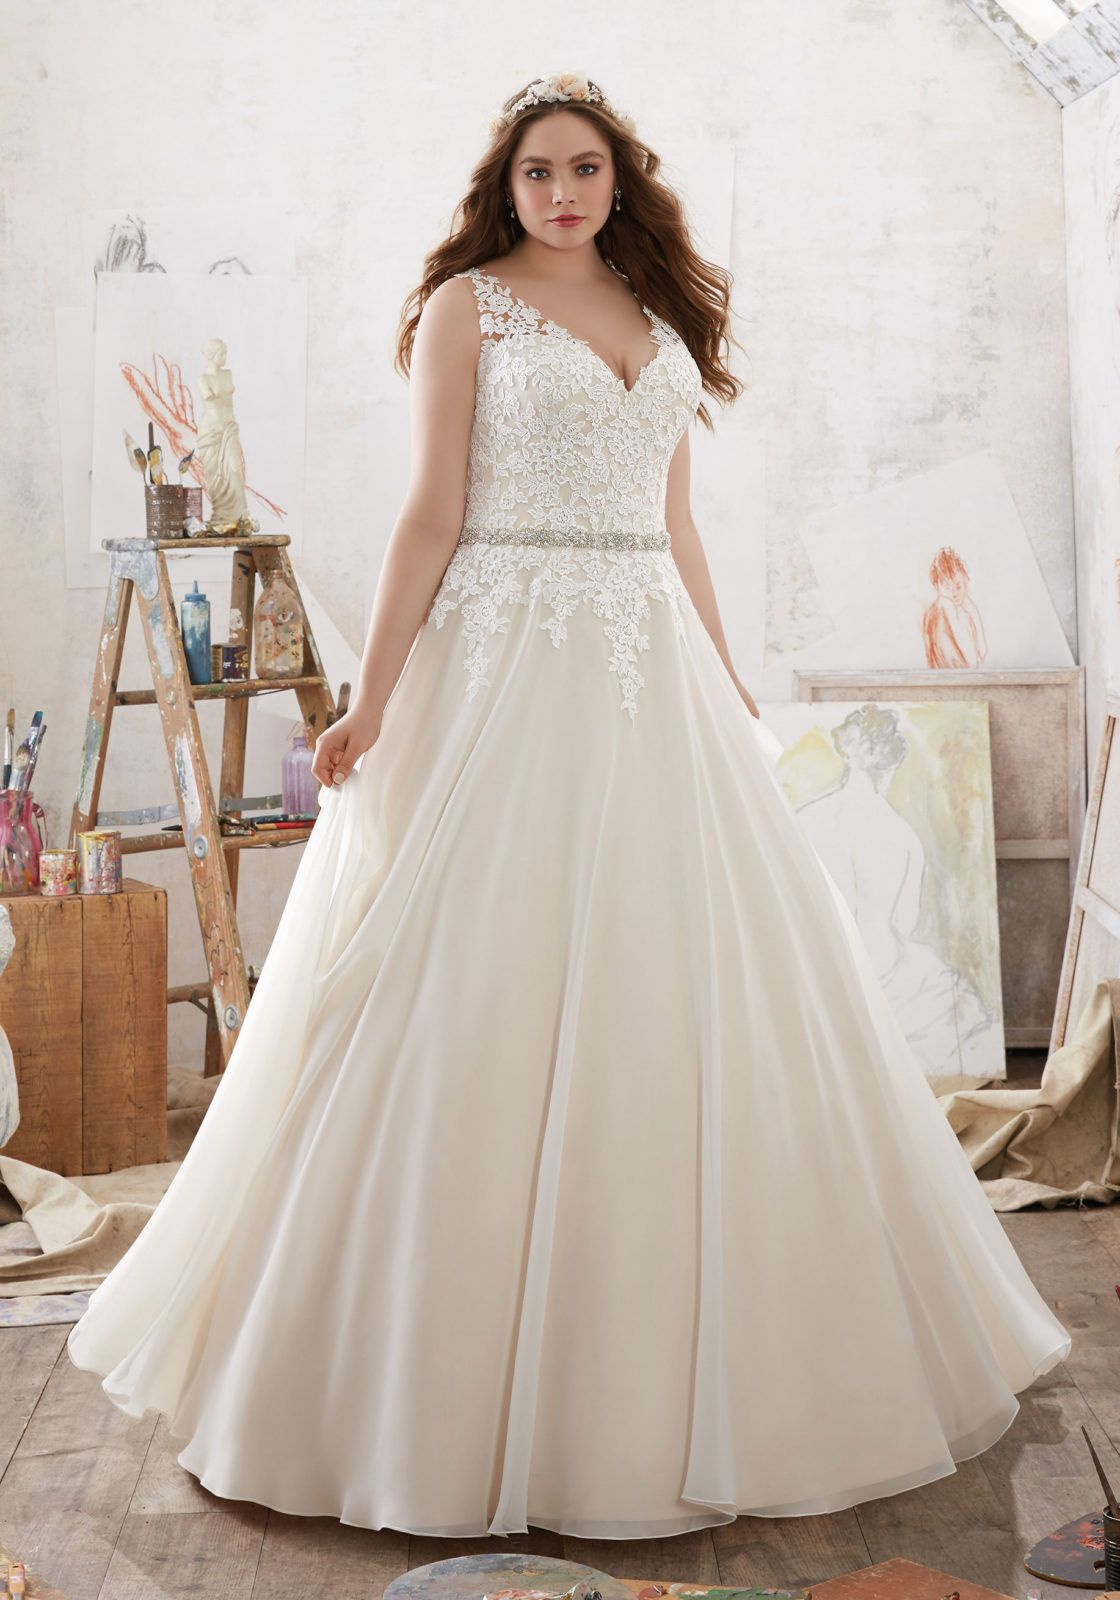 Morilee by madeline gardner umichelleu frosted venice lace